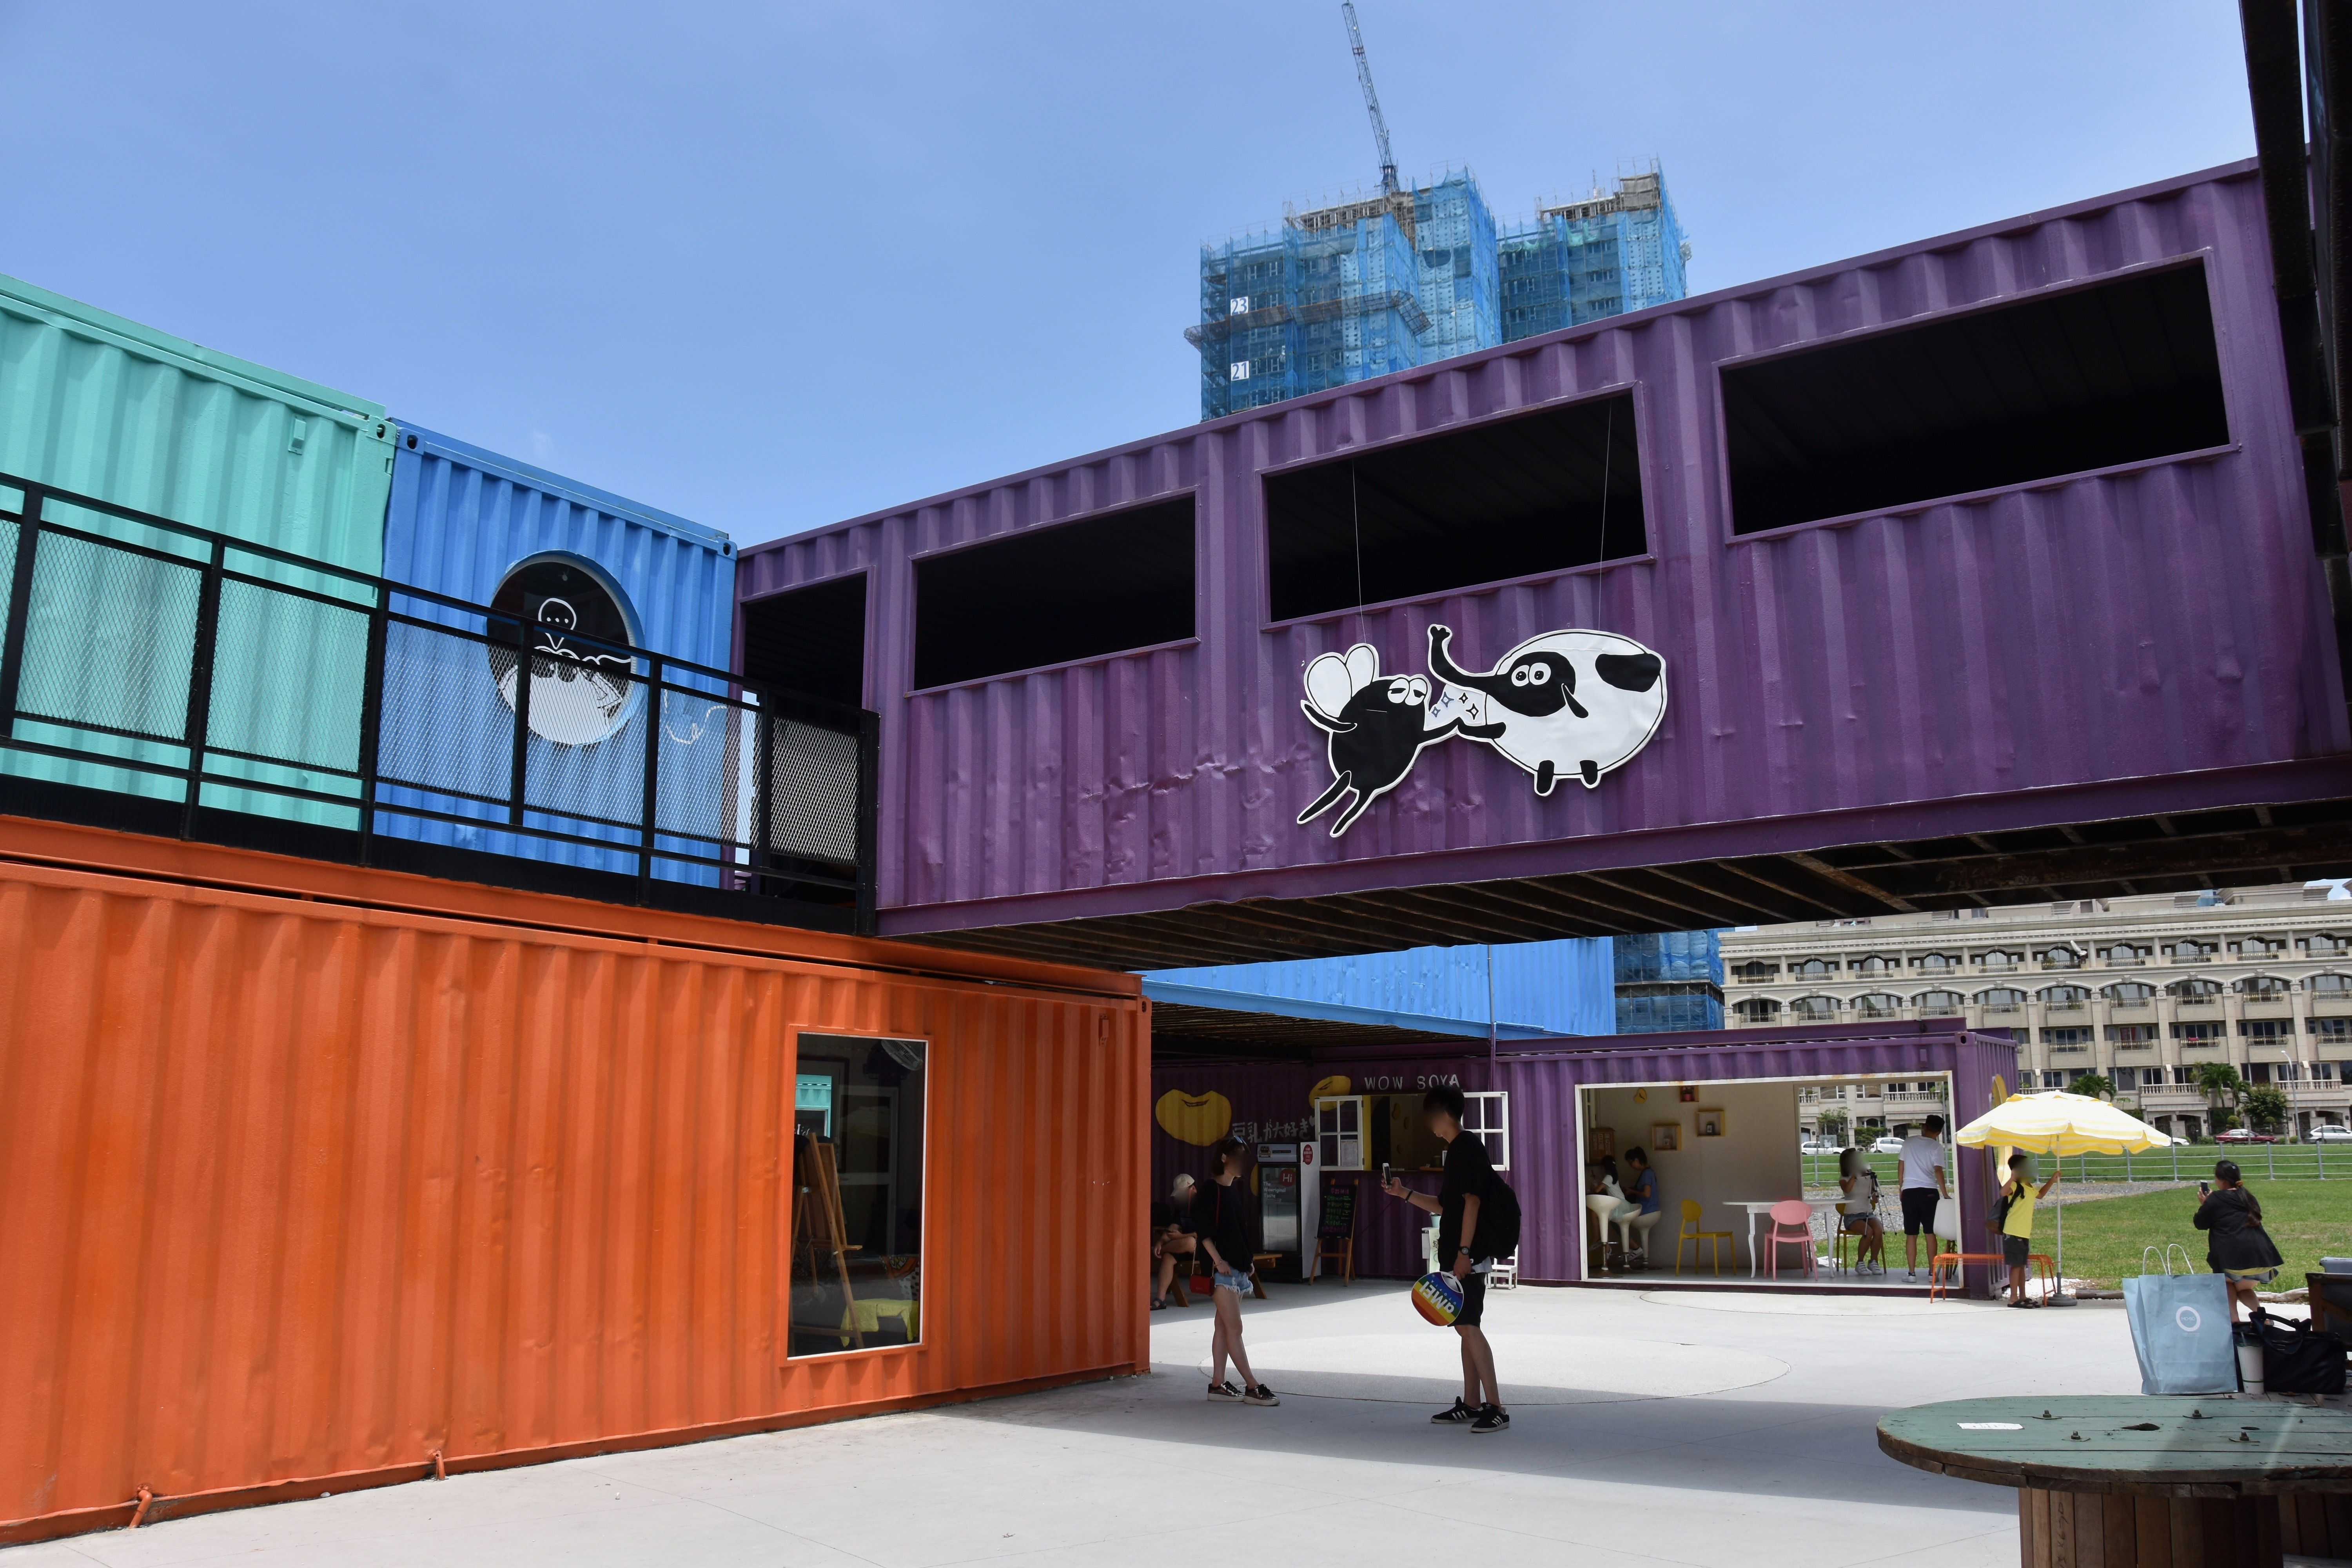 Things to do in Kaohsiung: Visit KUBIC container park